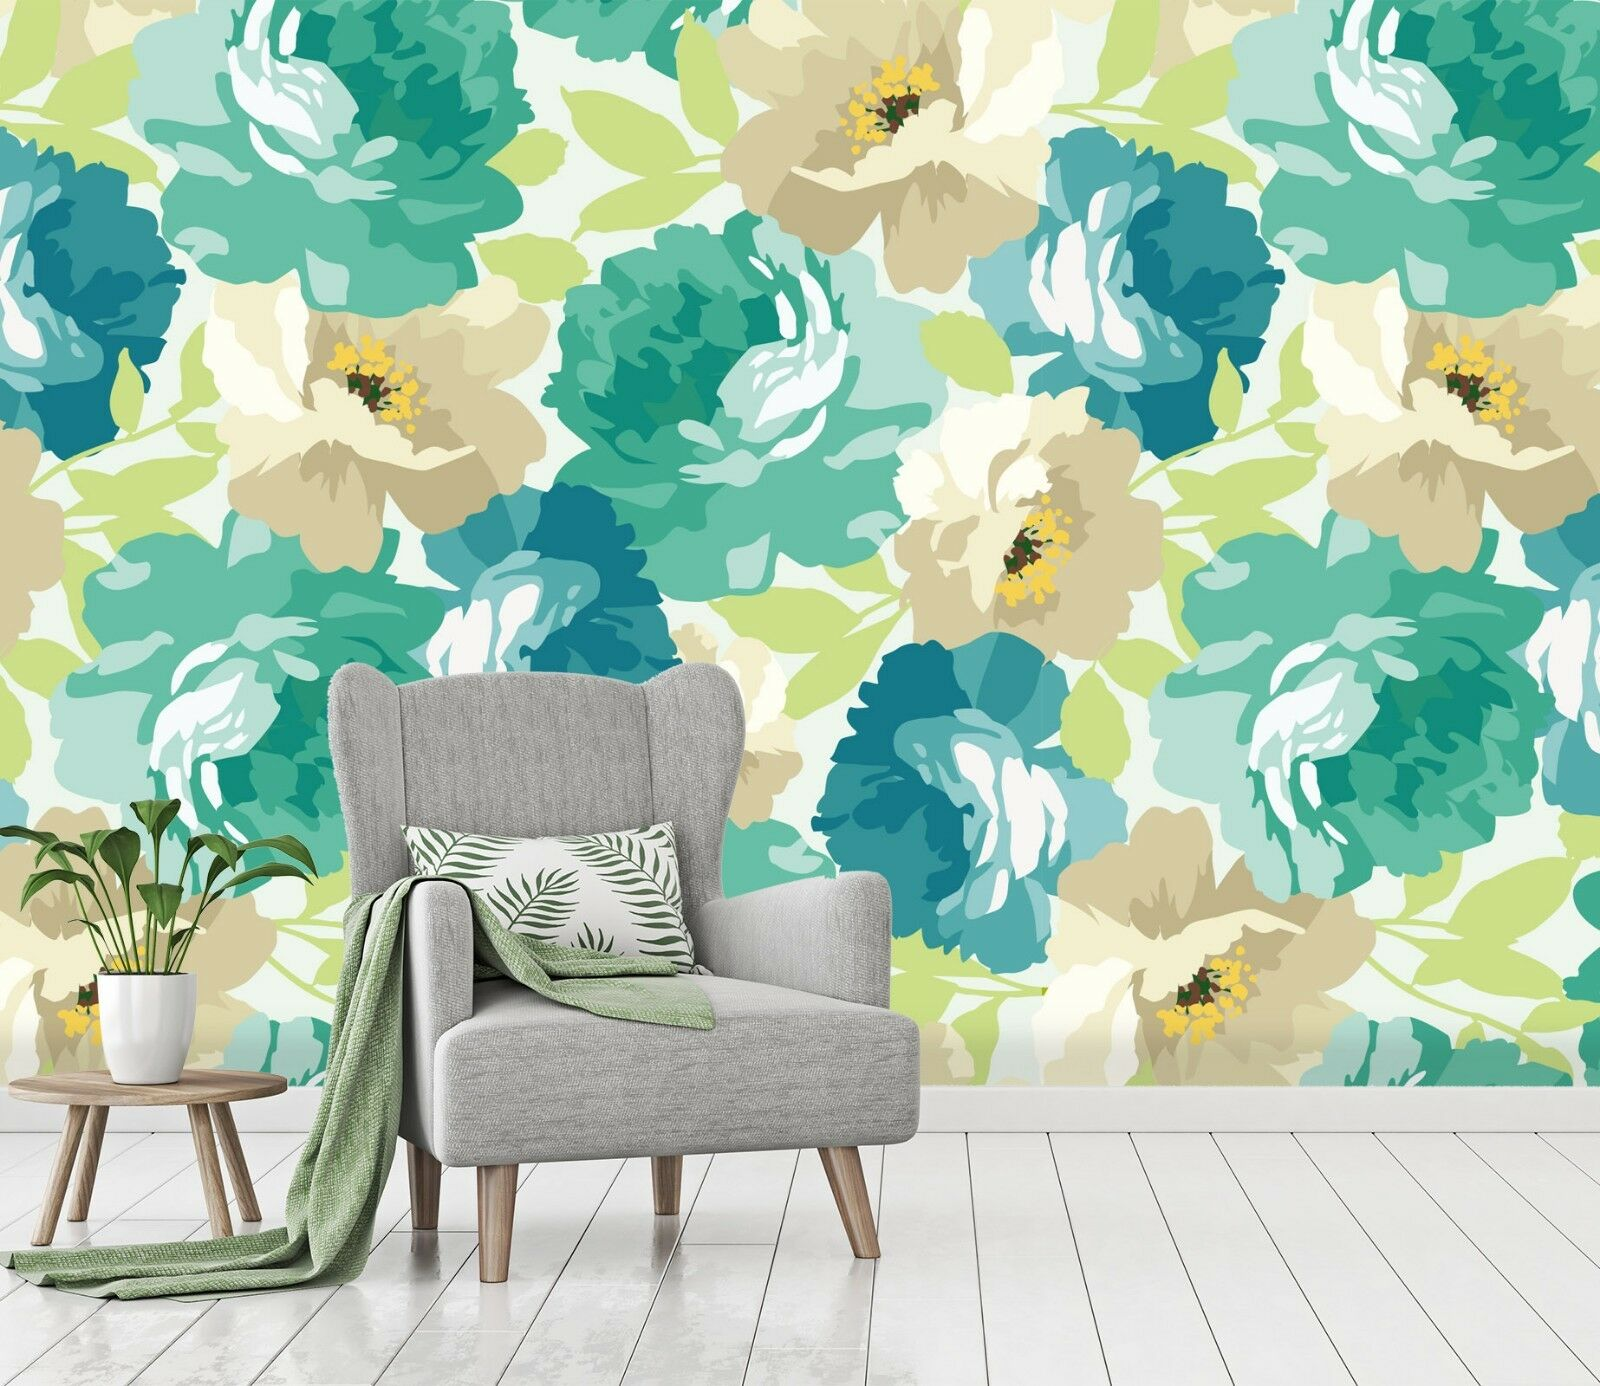 3D Blooming Grün Flowers 52 Wallpaper Murals Wall Print Wallpaper Mural AJ WAL